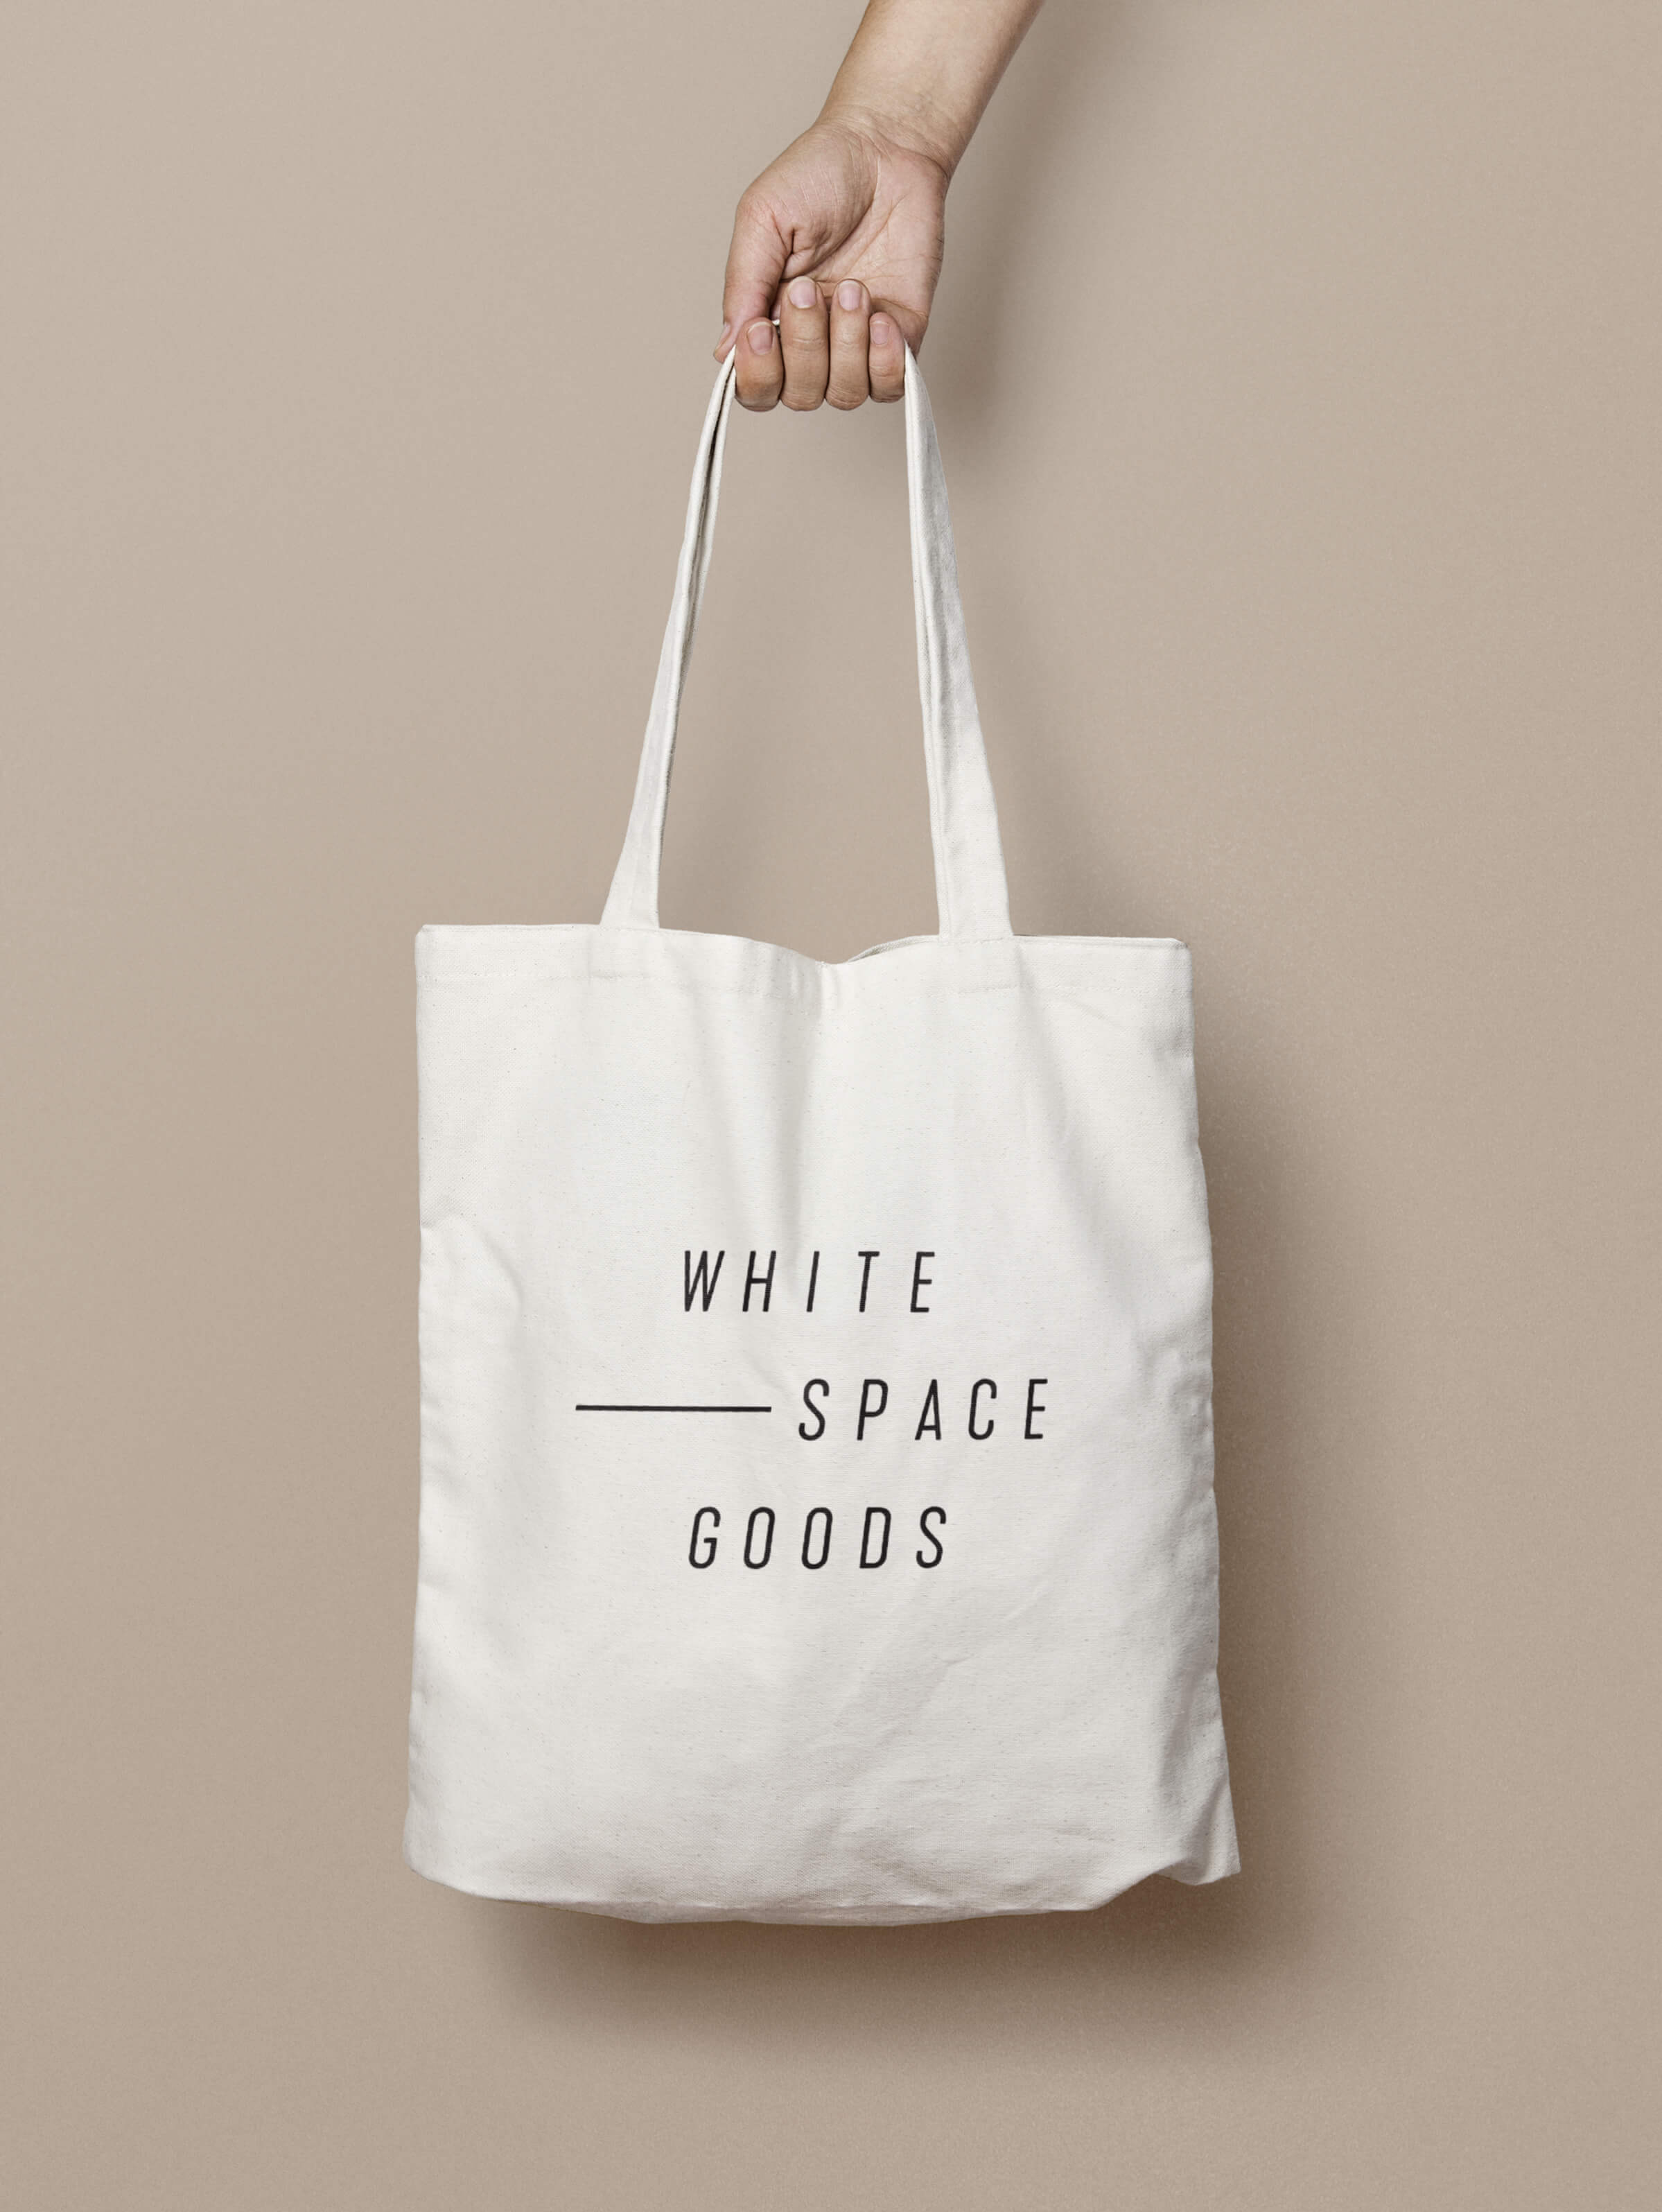 Whitespace Goods shopping bag for Ottawa-based handmade knitware and decor by graphic designer idApostle